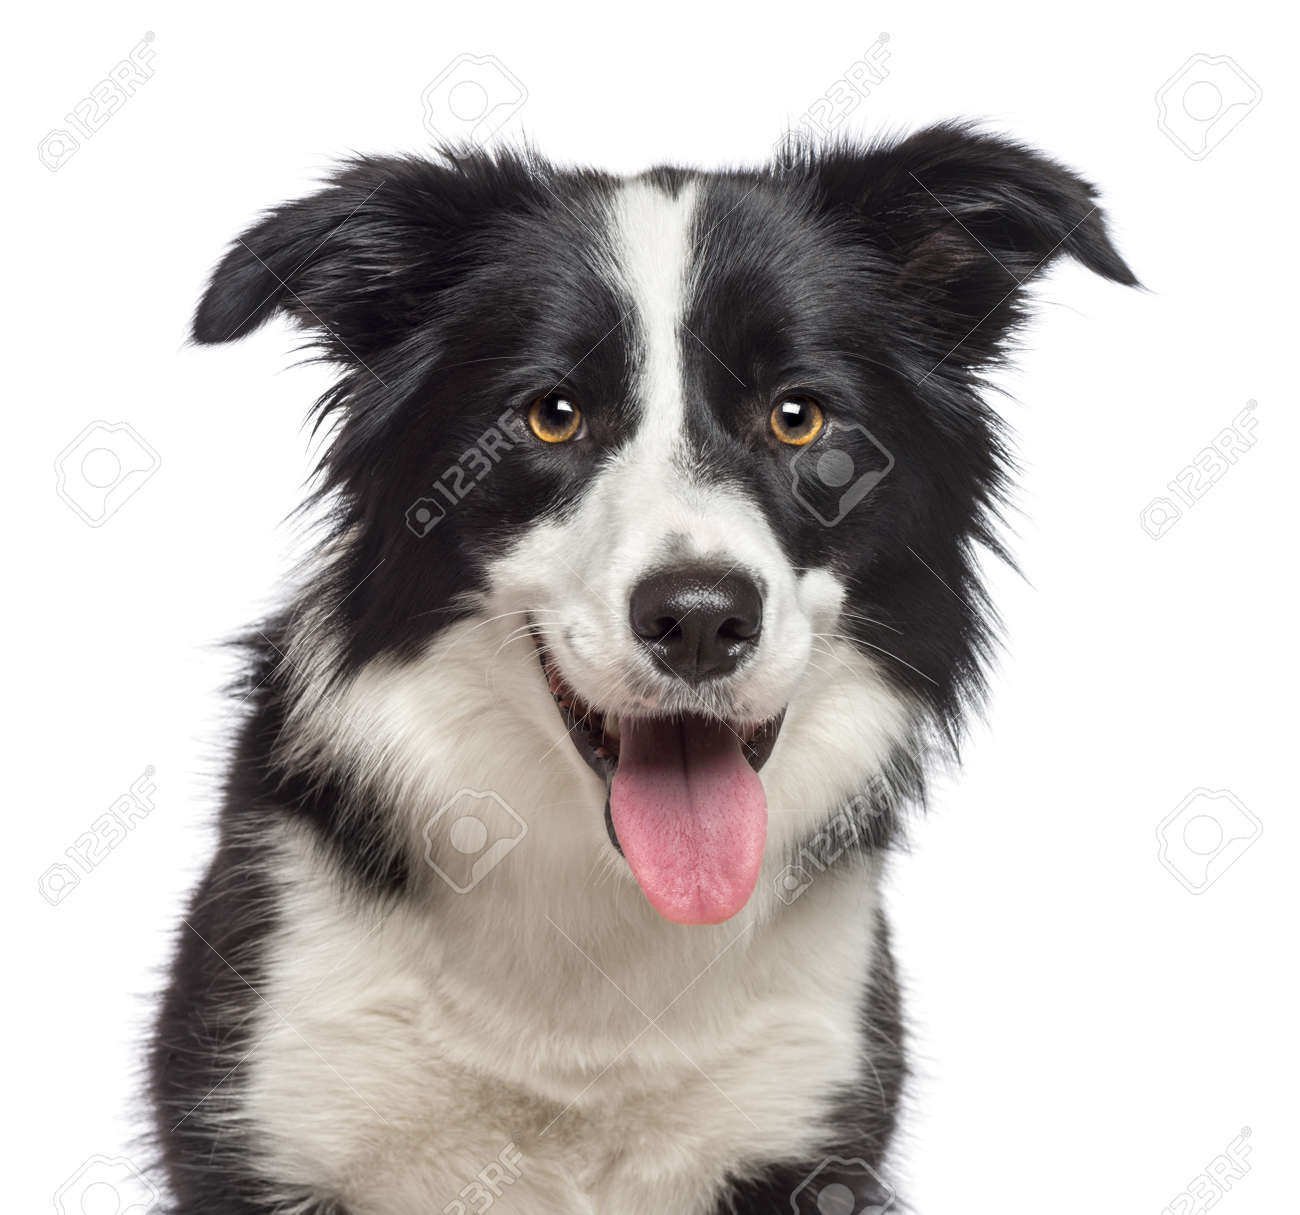 Close-up of Border Collie, 1.5 years old, looking at camera against white background Stock Photo - 16773982